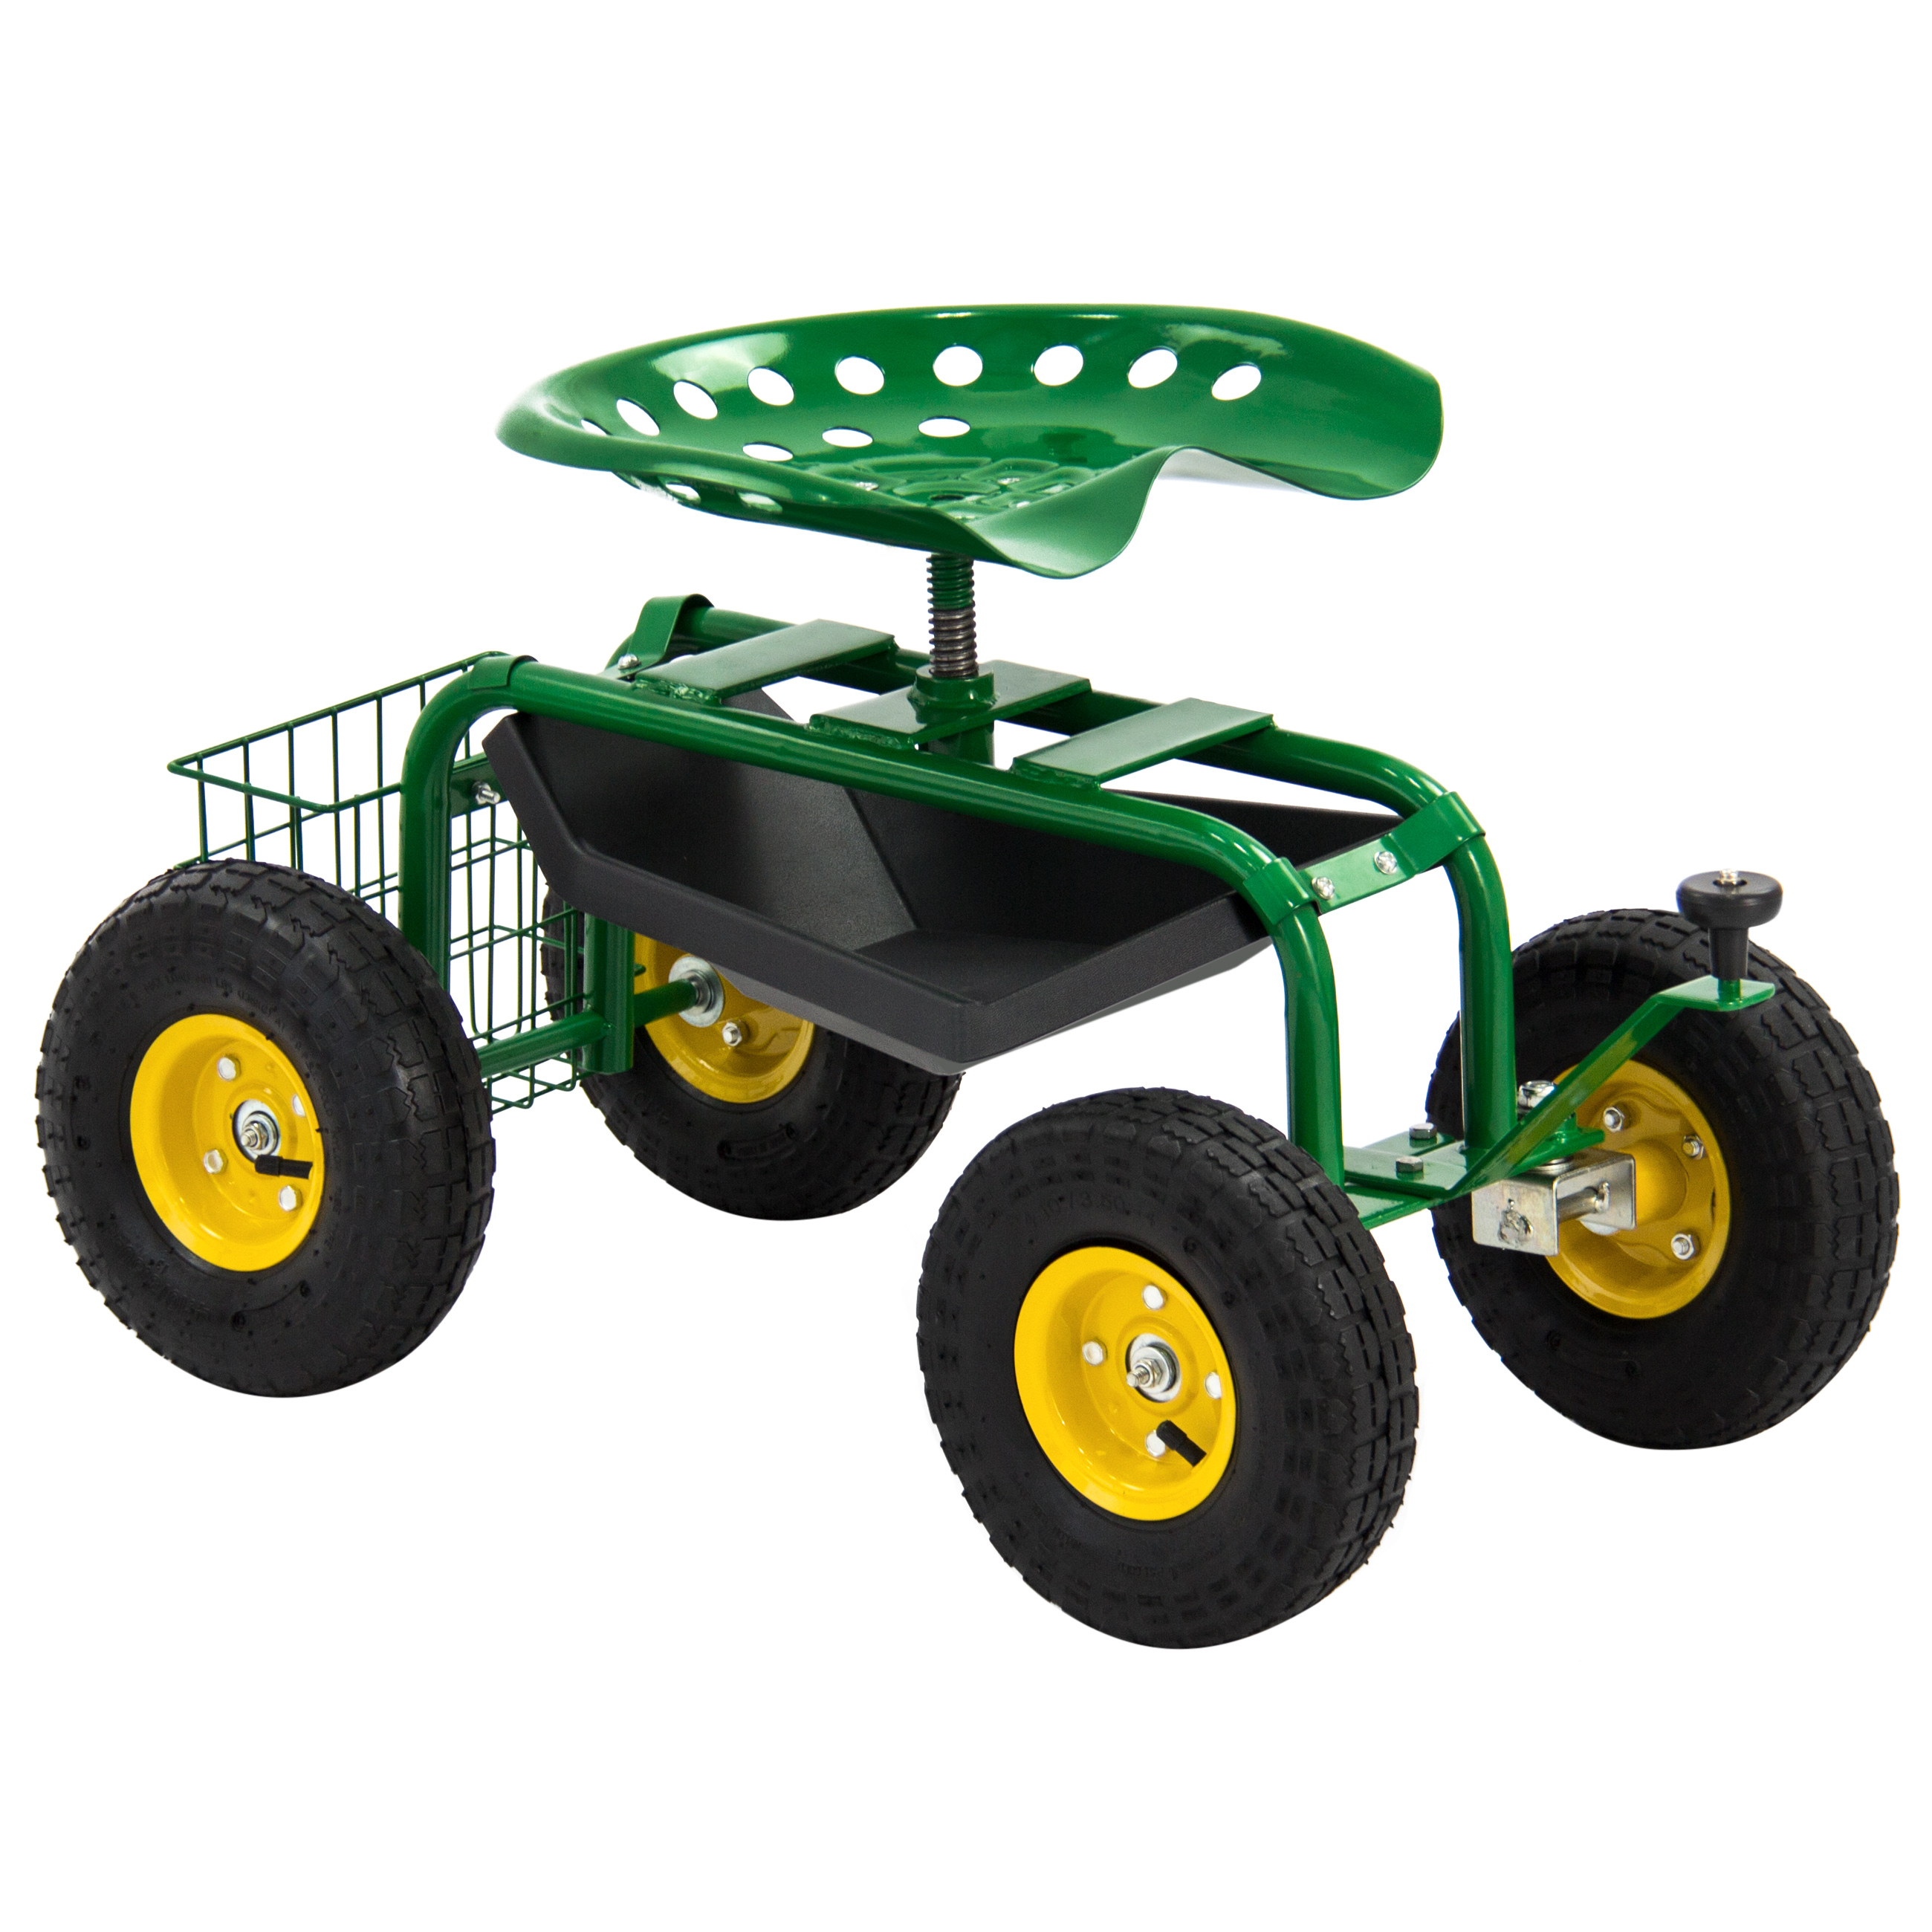 Garden Cart Rolling Work Seat With Tool Tray Heavy Duty Gardening Planting New  sc 1 st  Walmart & Garden Cart Rolling Work Seat With Tool Tray Heavy Duty Gardening ... islam-shia.org